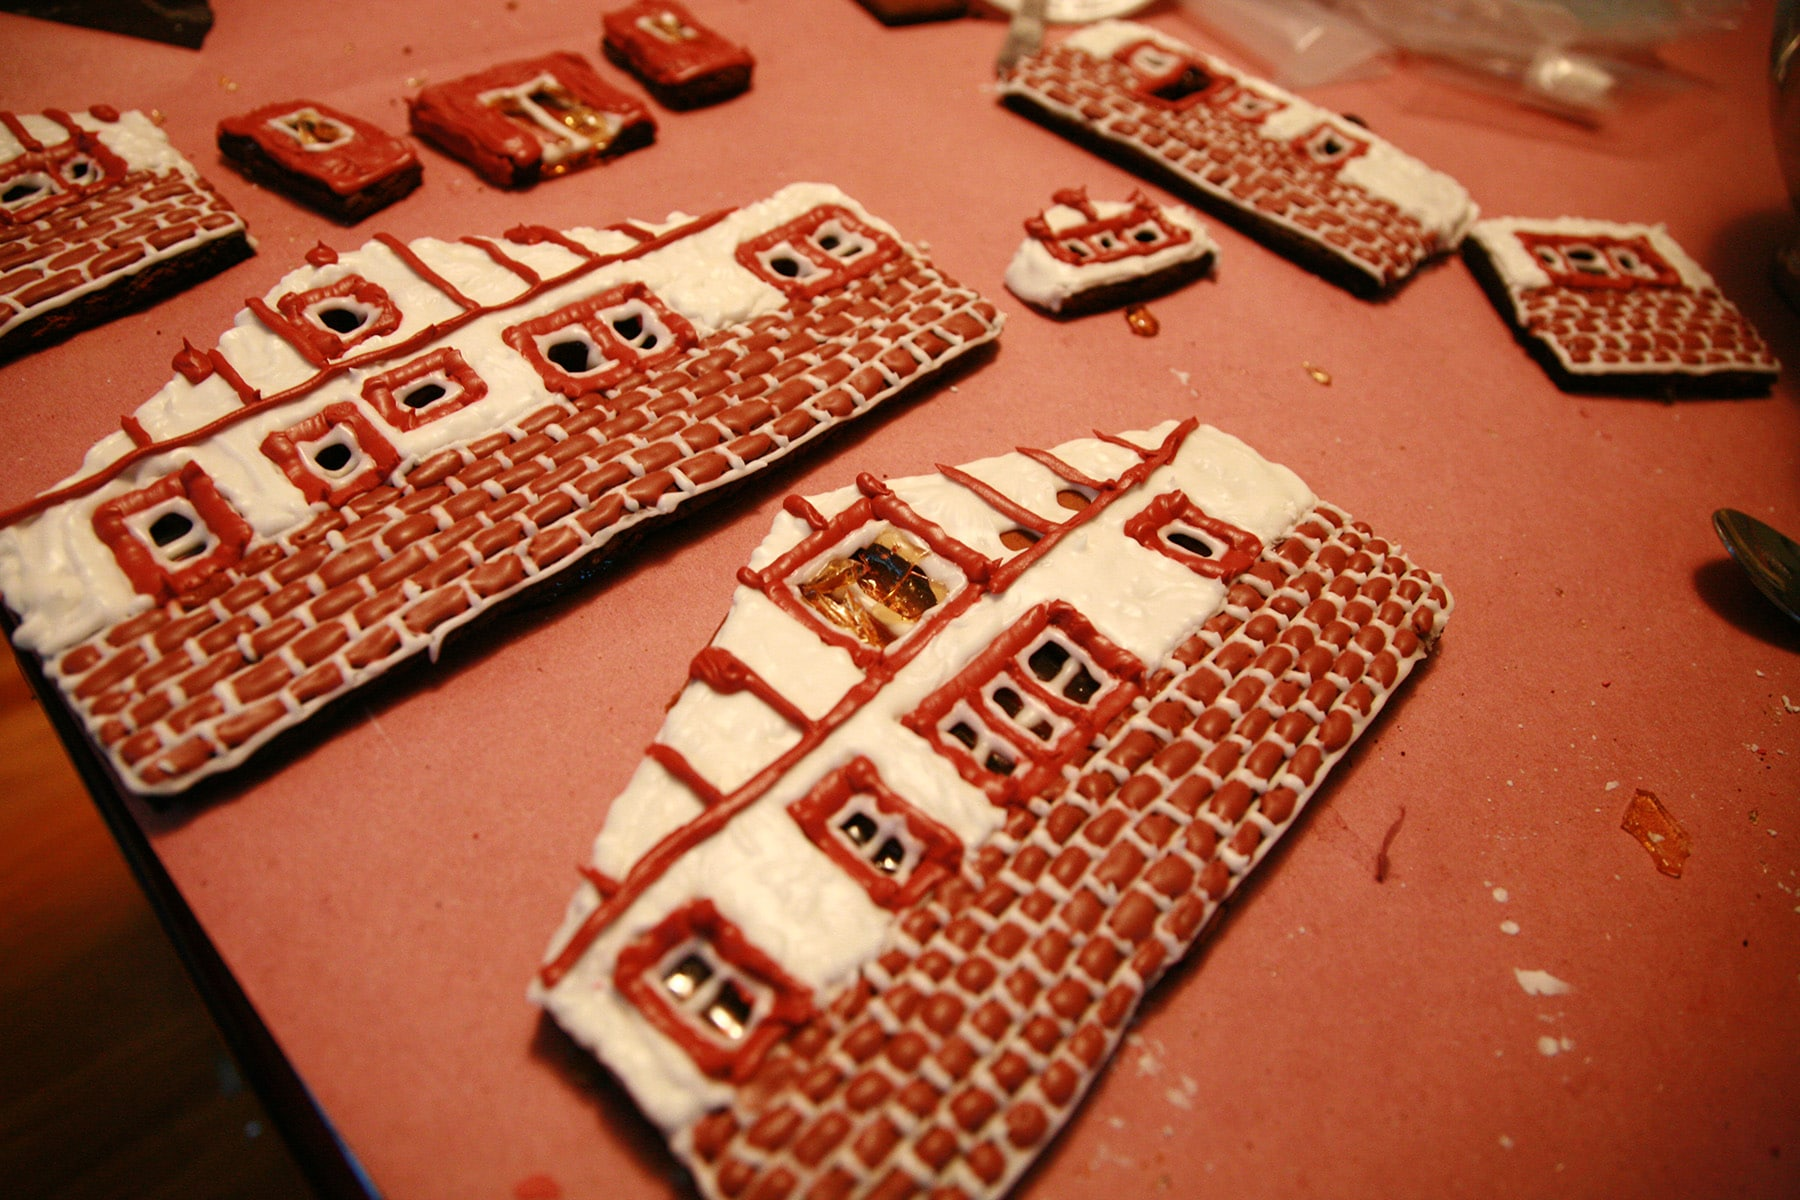 The walls of a gingerbread house, decorated with icing bricks and stucco.